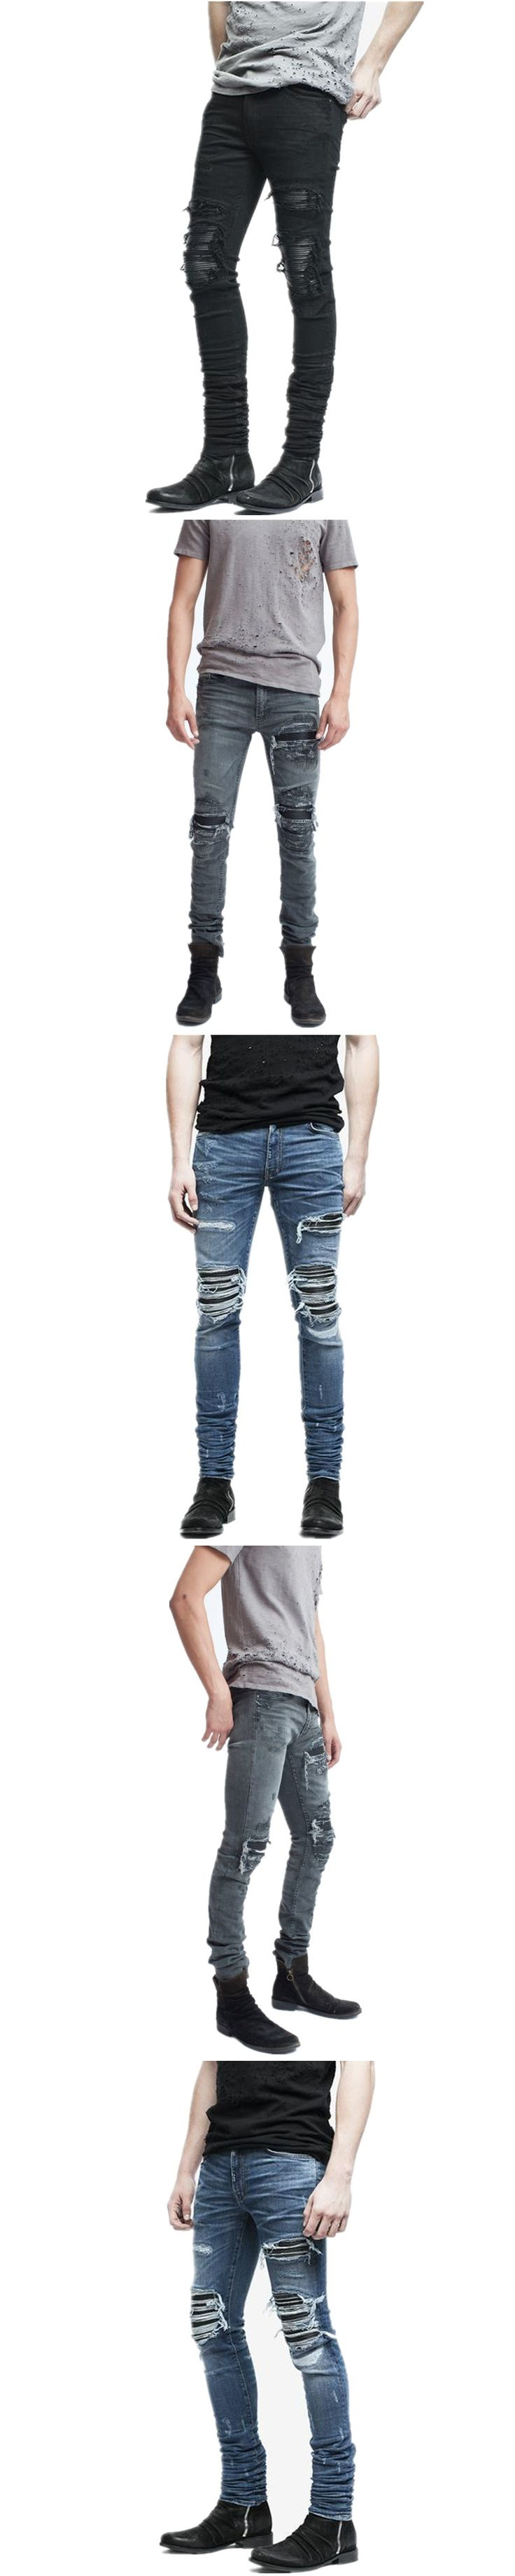 New Dropshipping Men Jeans Ripped Stretch Hole Distressed Mens Biker Pleated Skinny Jeans Streetwear Hip Hop Jogger Pants